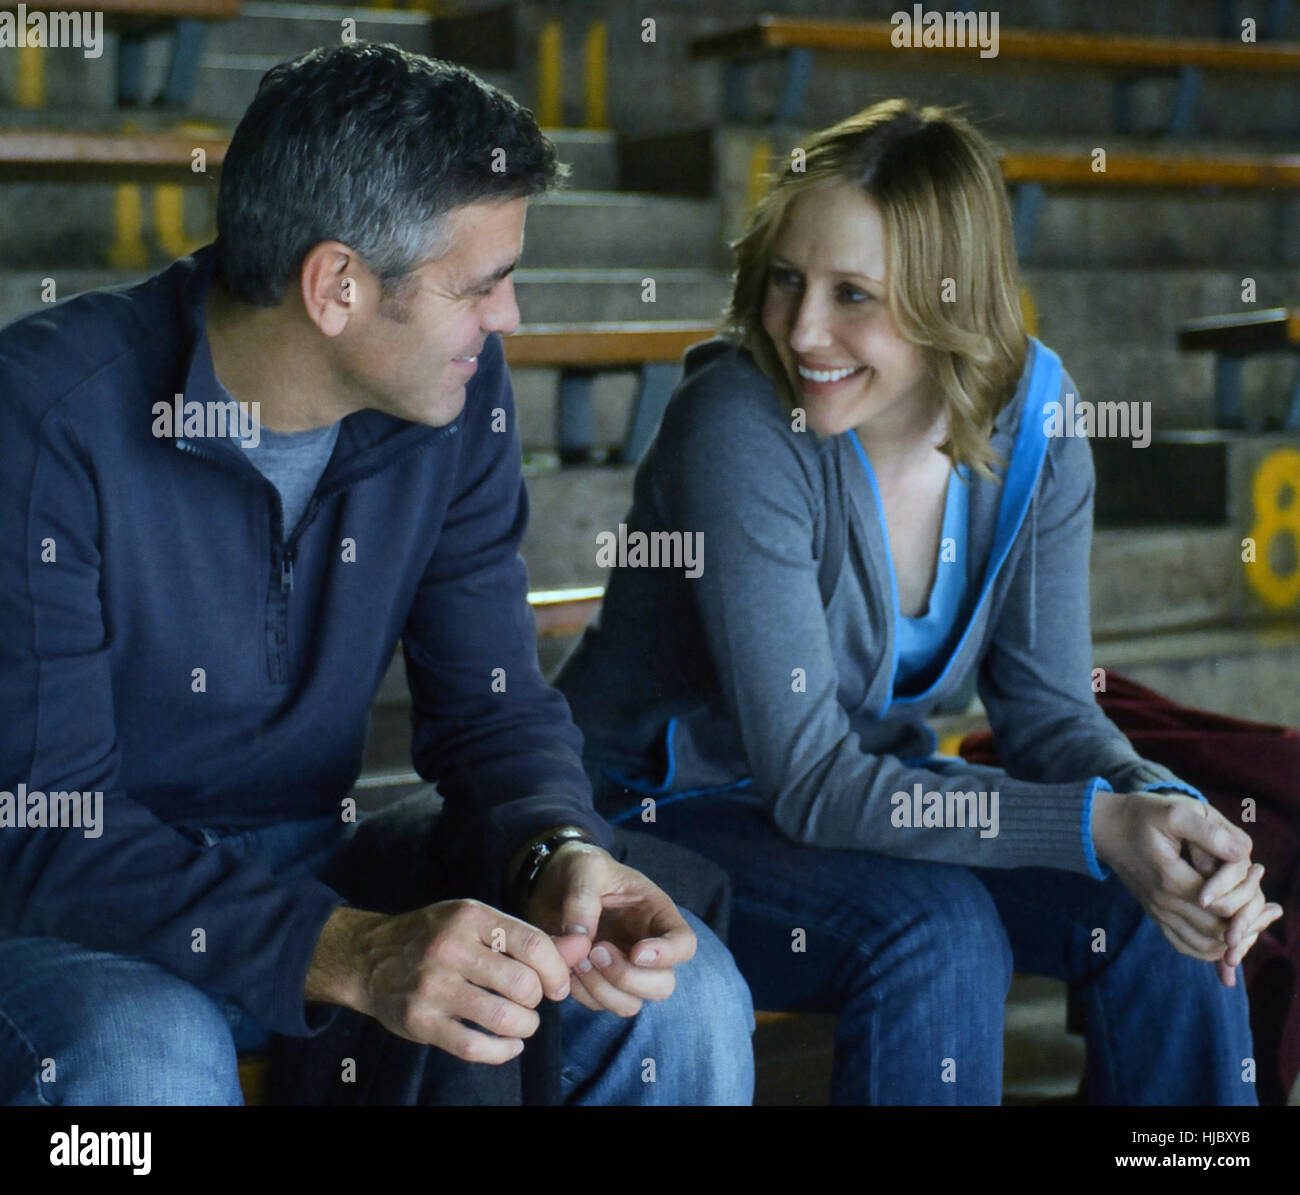 UP IN THE AIR 2009 Paramount Pictures film with George Clooney and Vera Farmiga - Stock Image